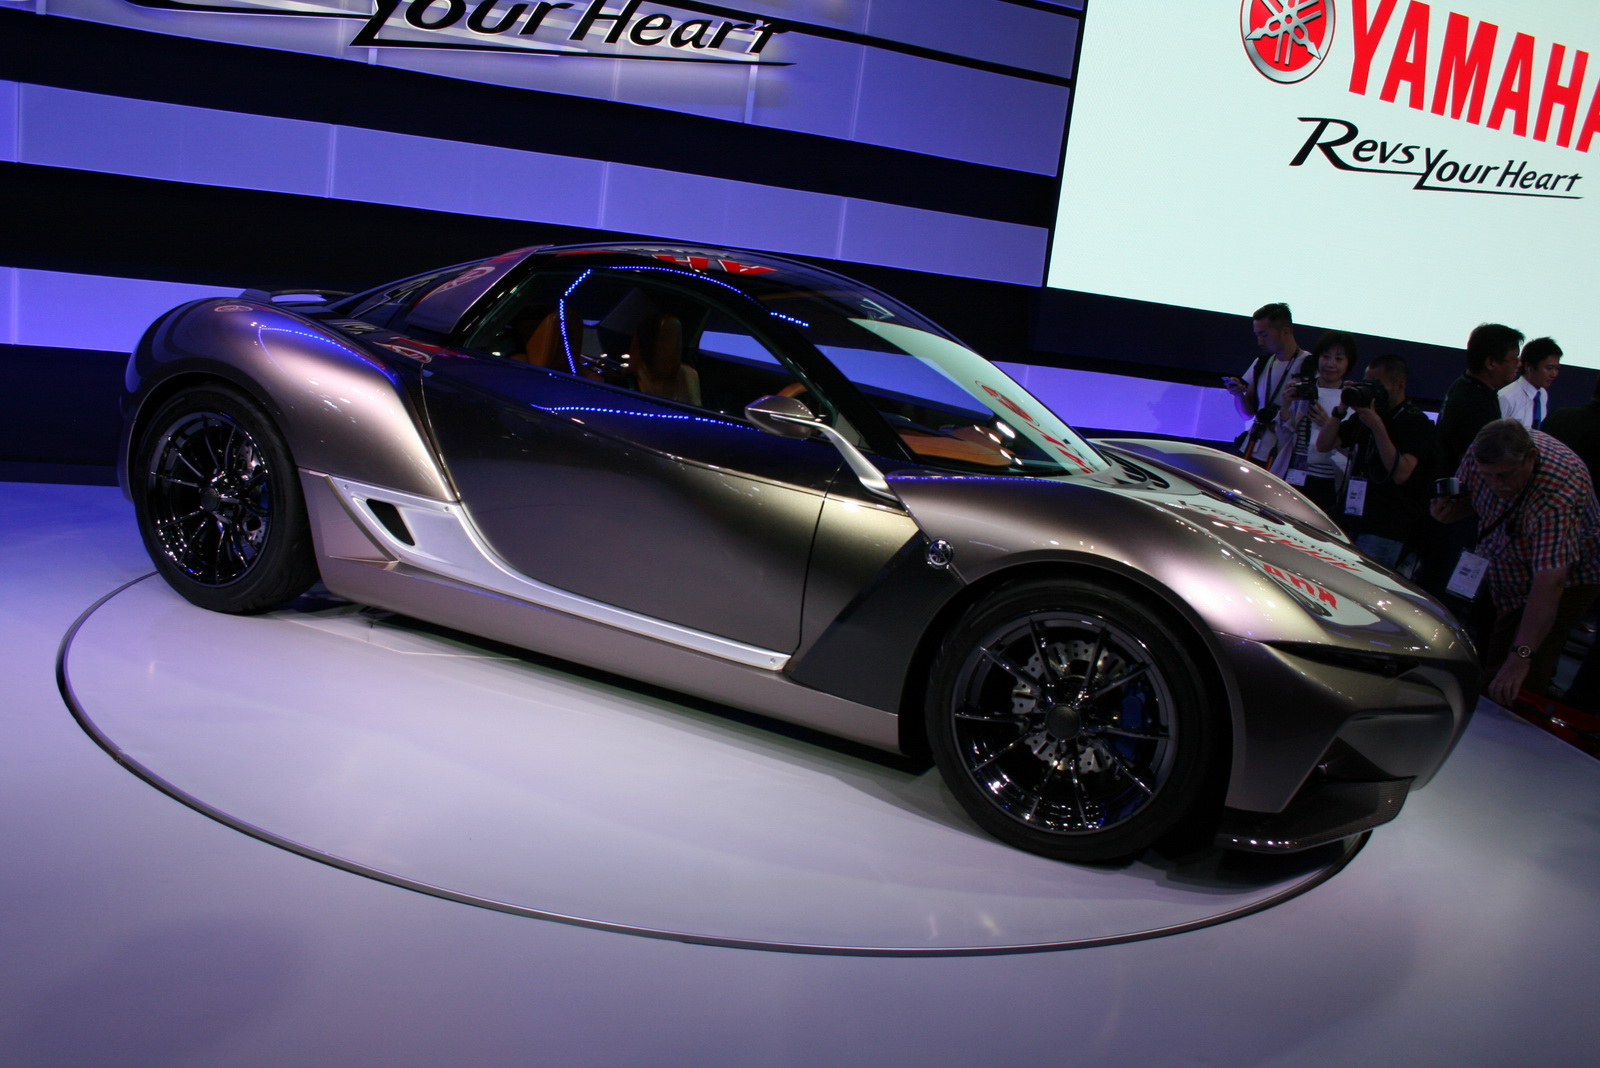 Yamaha's New Sports Ride Concept Is The Affordable Carbon